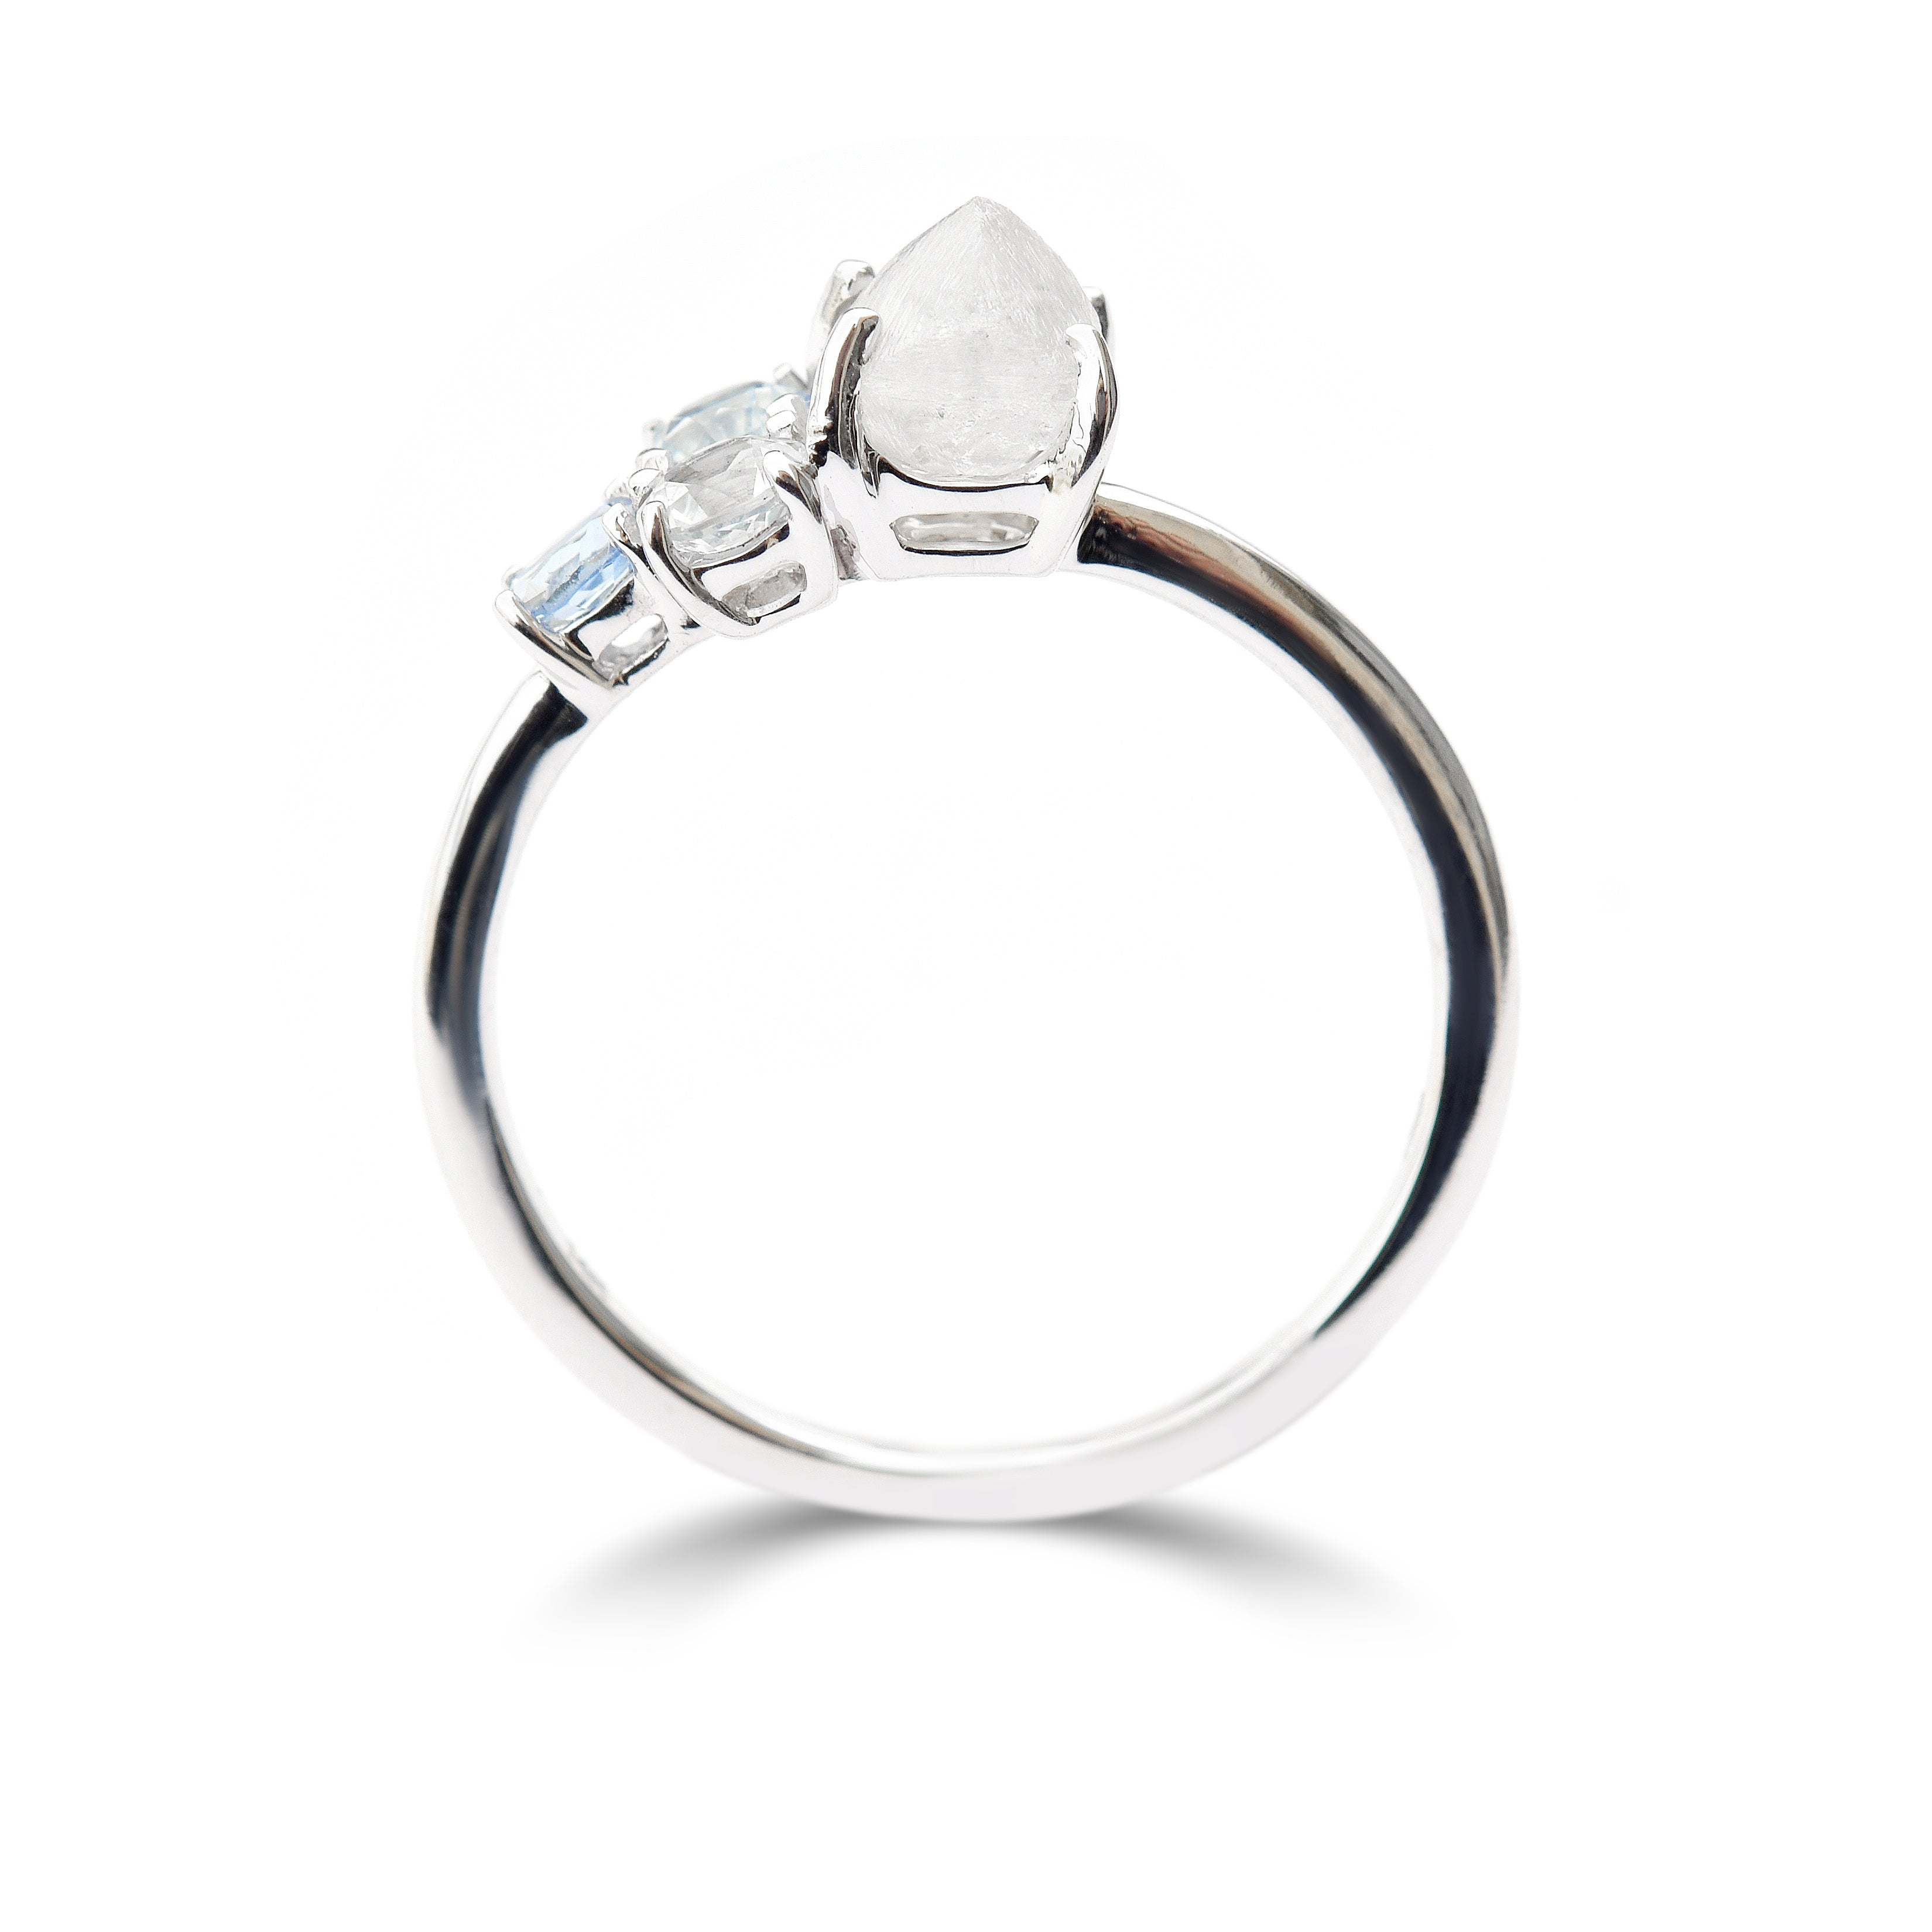 The Raziel ring - a customizable rough diamond and sapphire cluster engagement ring